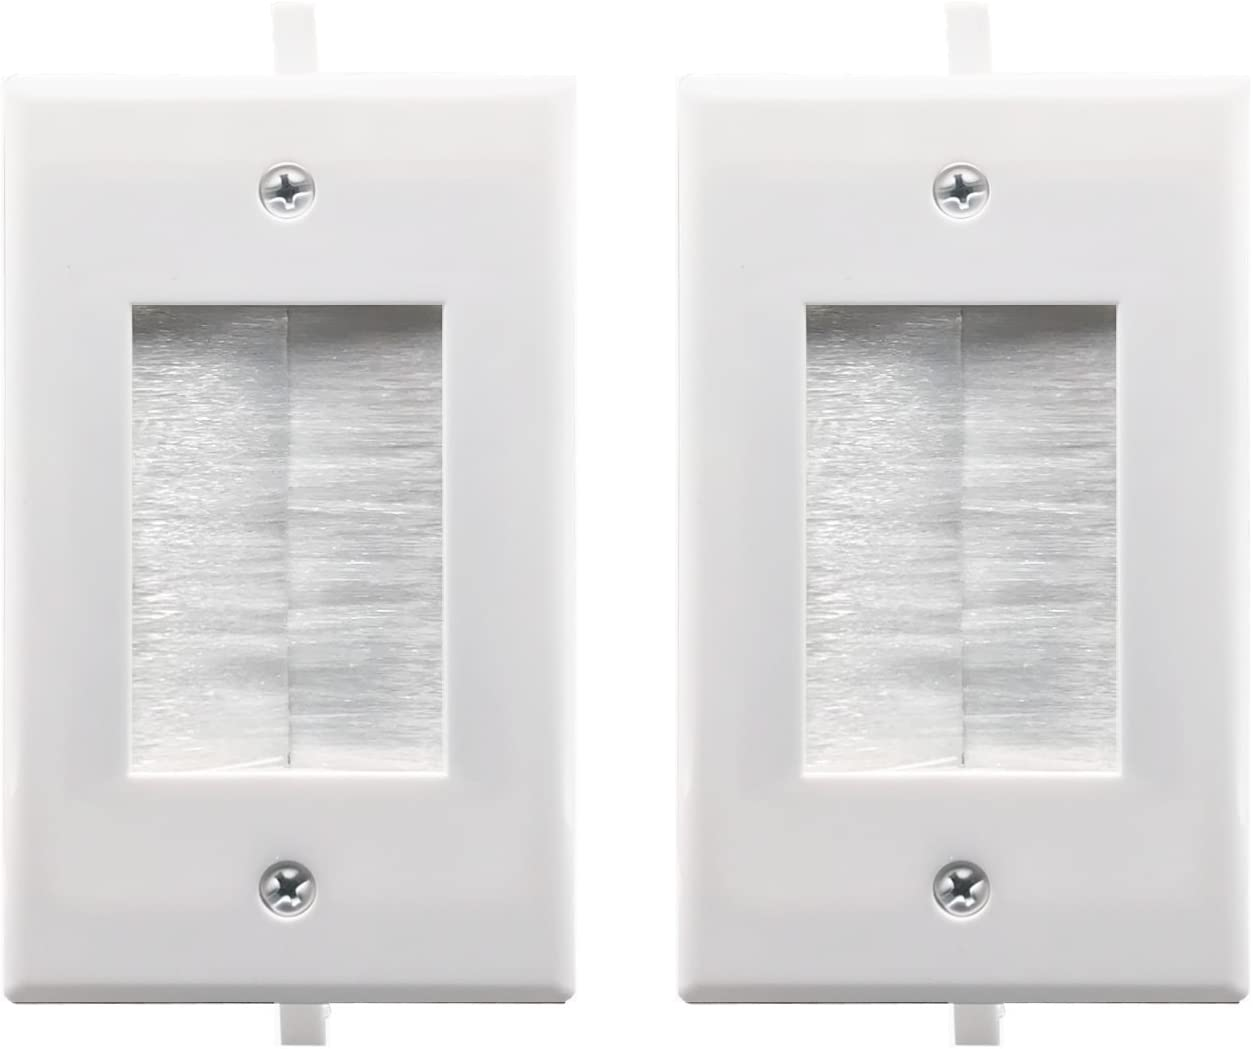 Recessed Low Voltage Cable Through Brush Wall Plate,Yomyrayhu,Easy to Mount Outlet,Cable Management Pass Through Wall Plate,Works Great with Audio//Vedio,HDMI,Home Theater and More,White 2 Pack